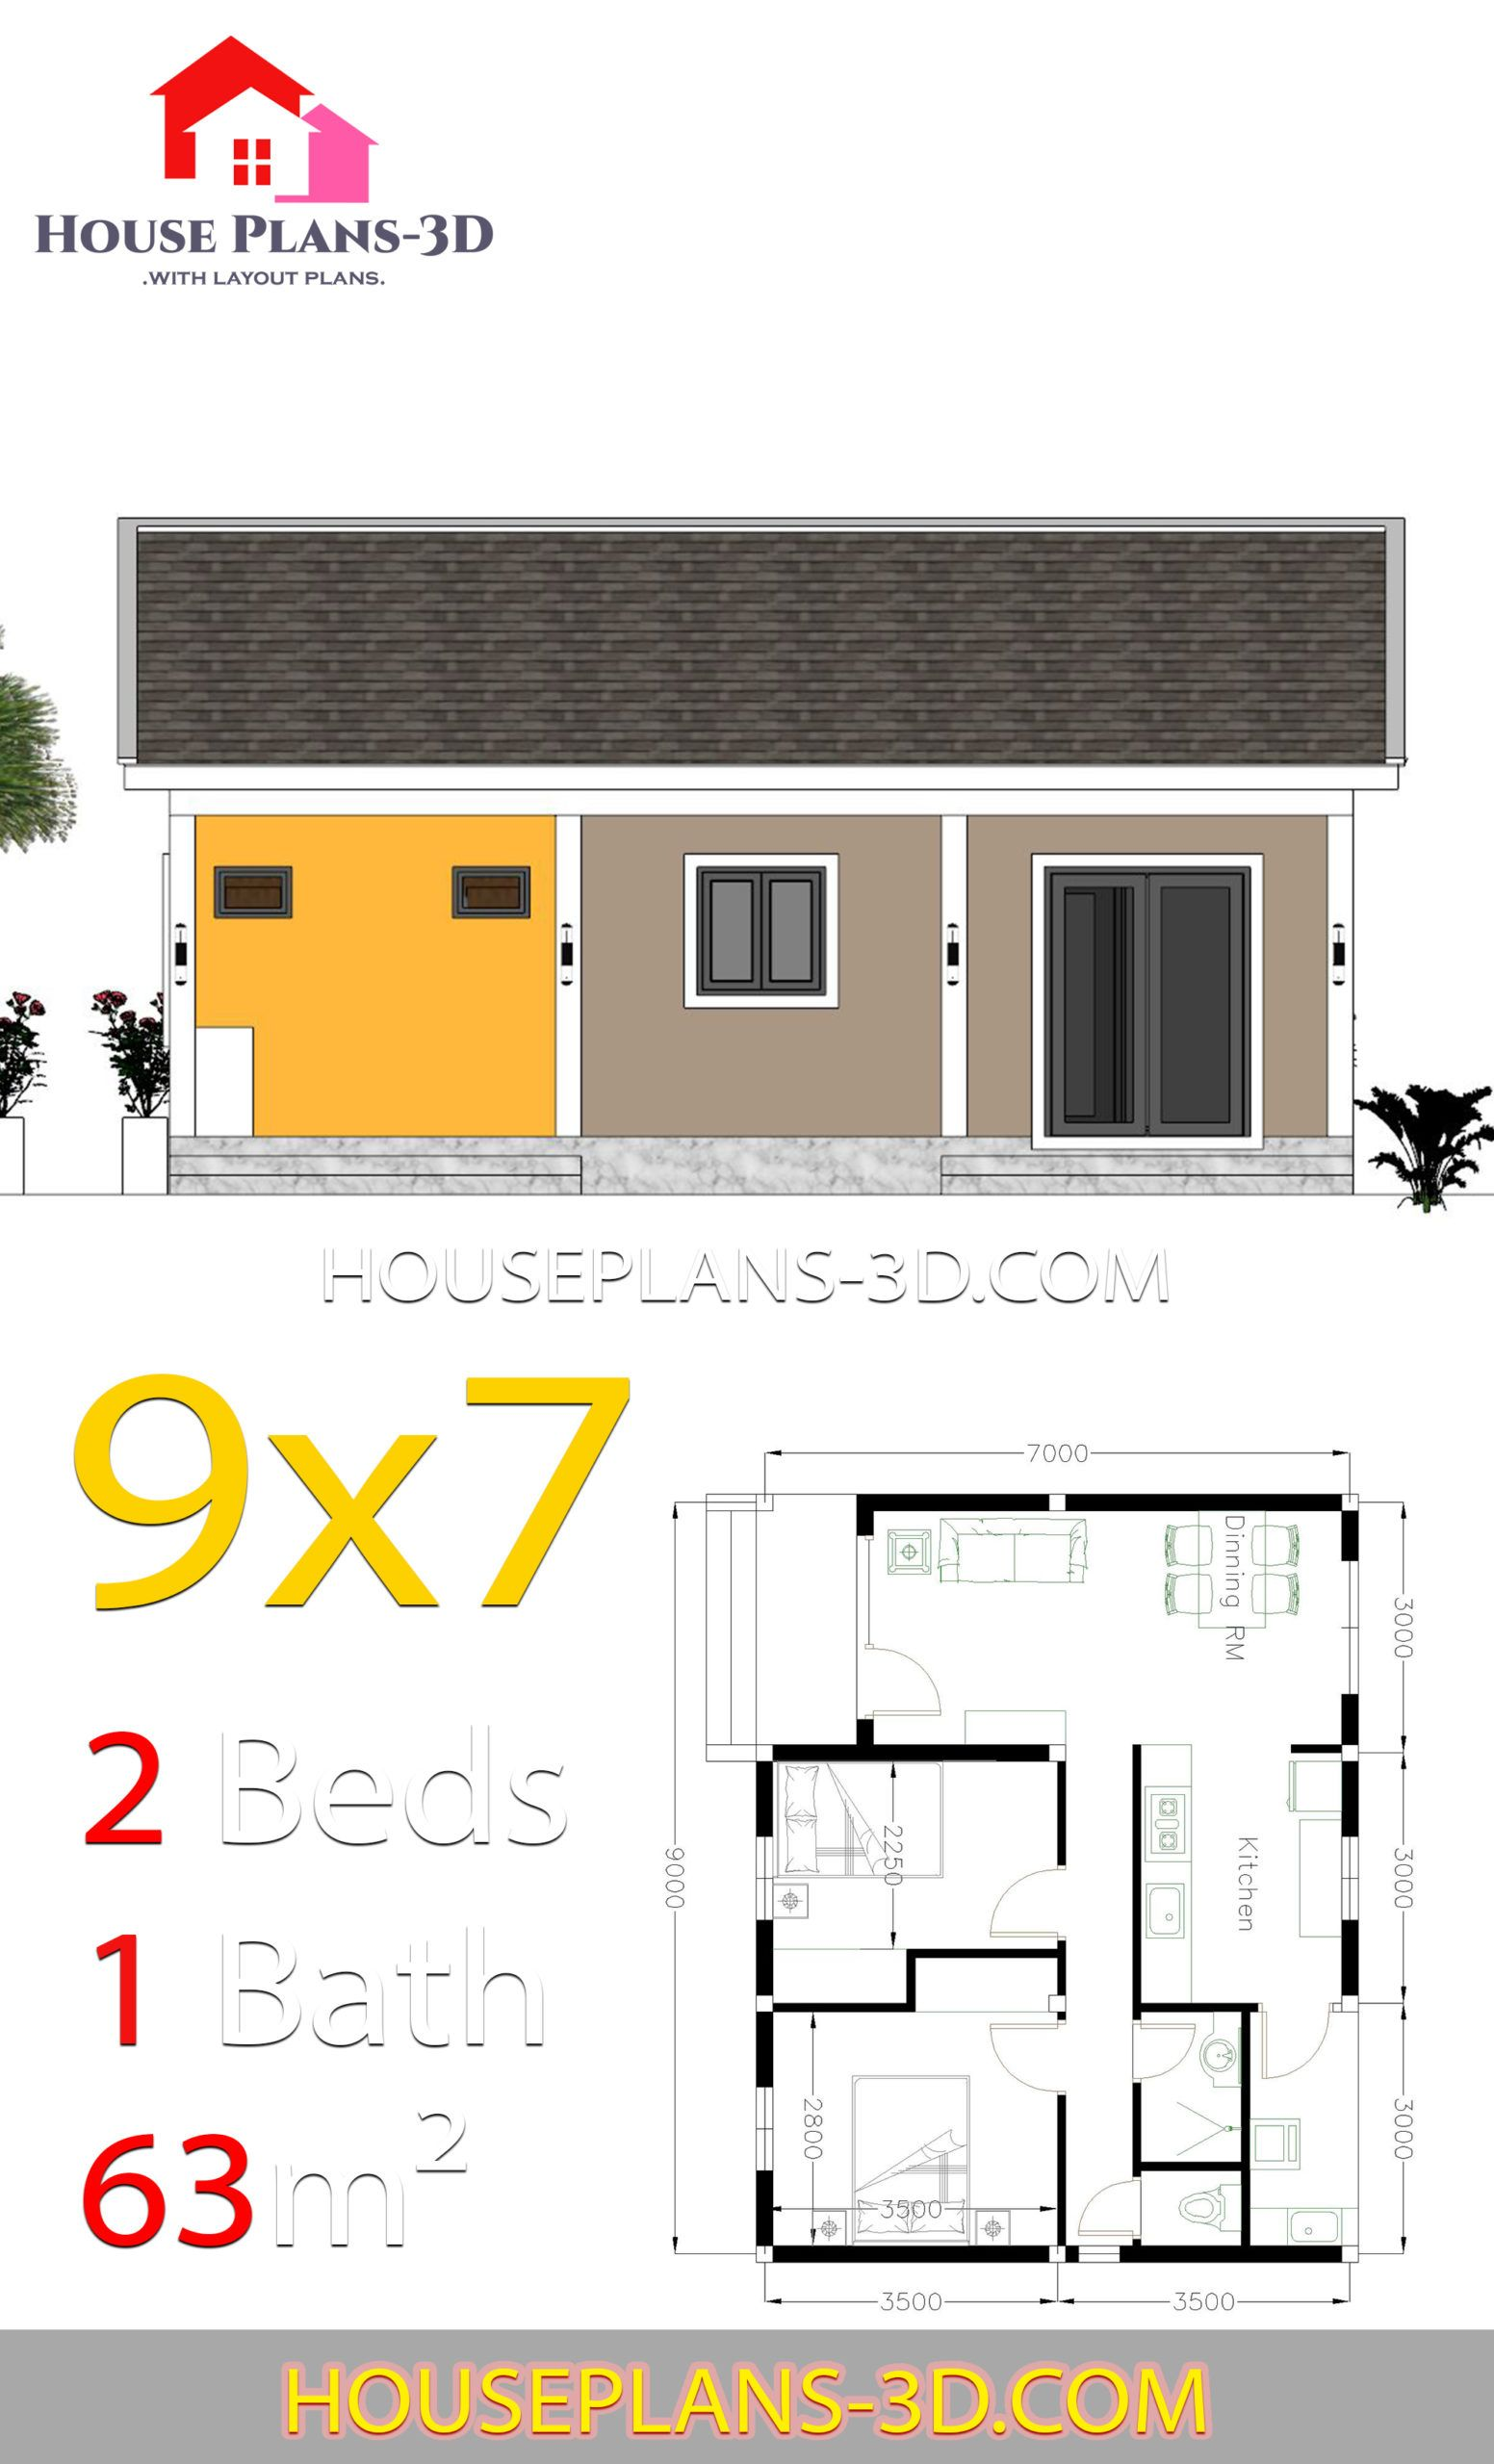 House Plans 9x7 With 2 Bedrooms Gable Roof House Plans 3d House Plans Gable Roof House Diy House Plans